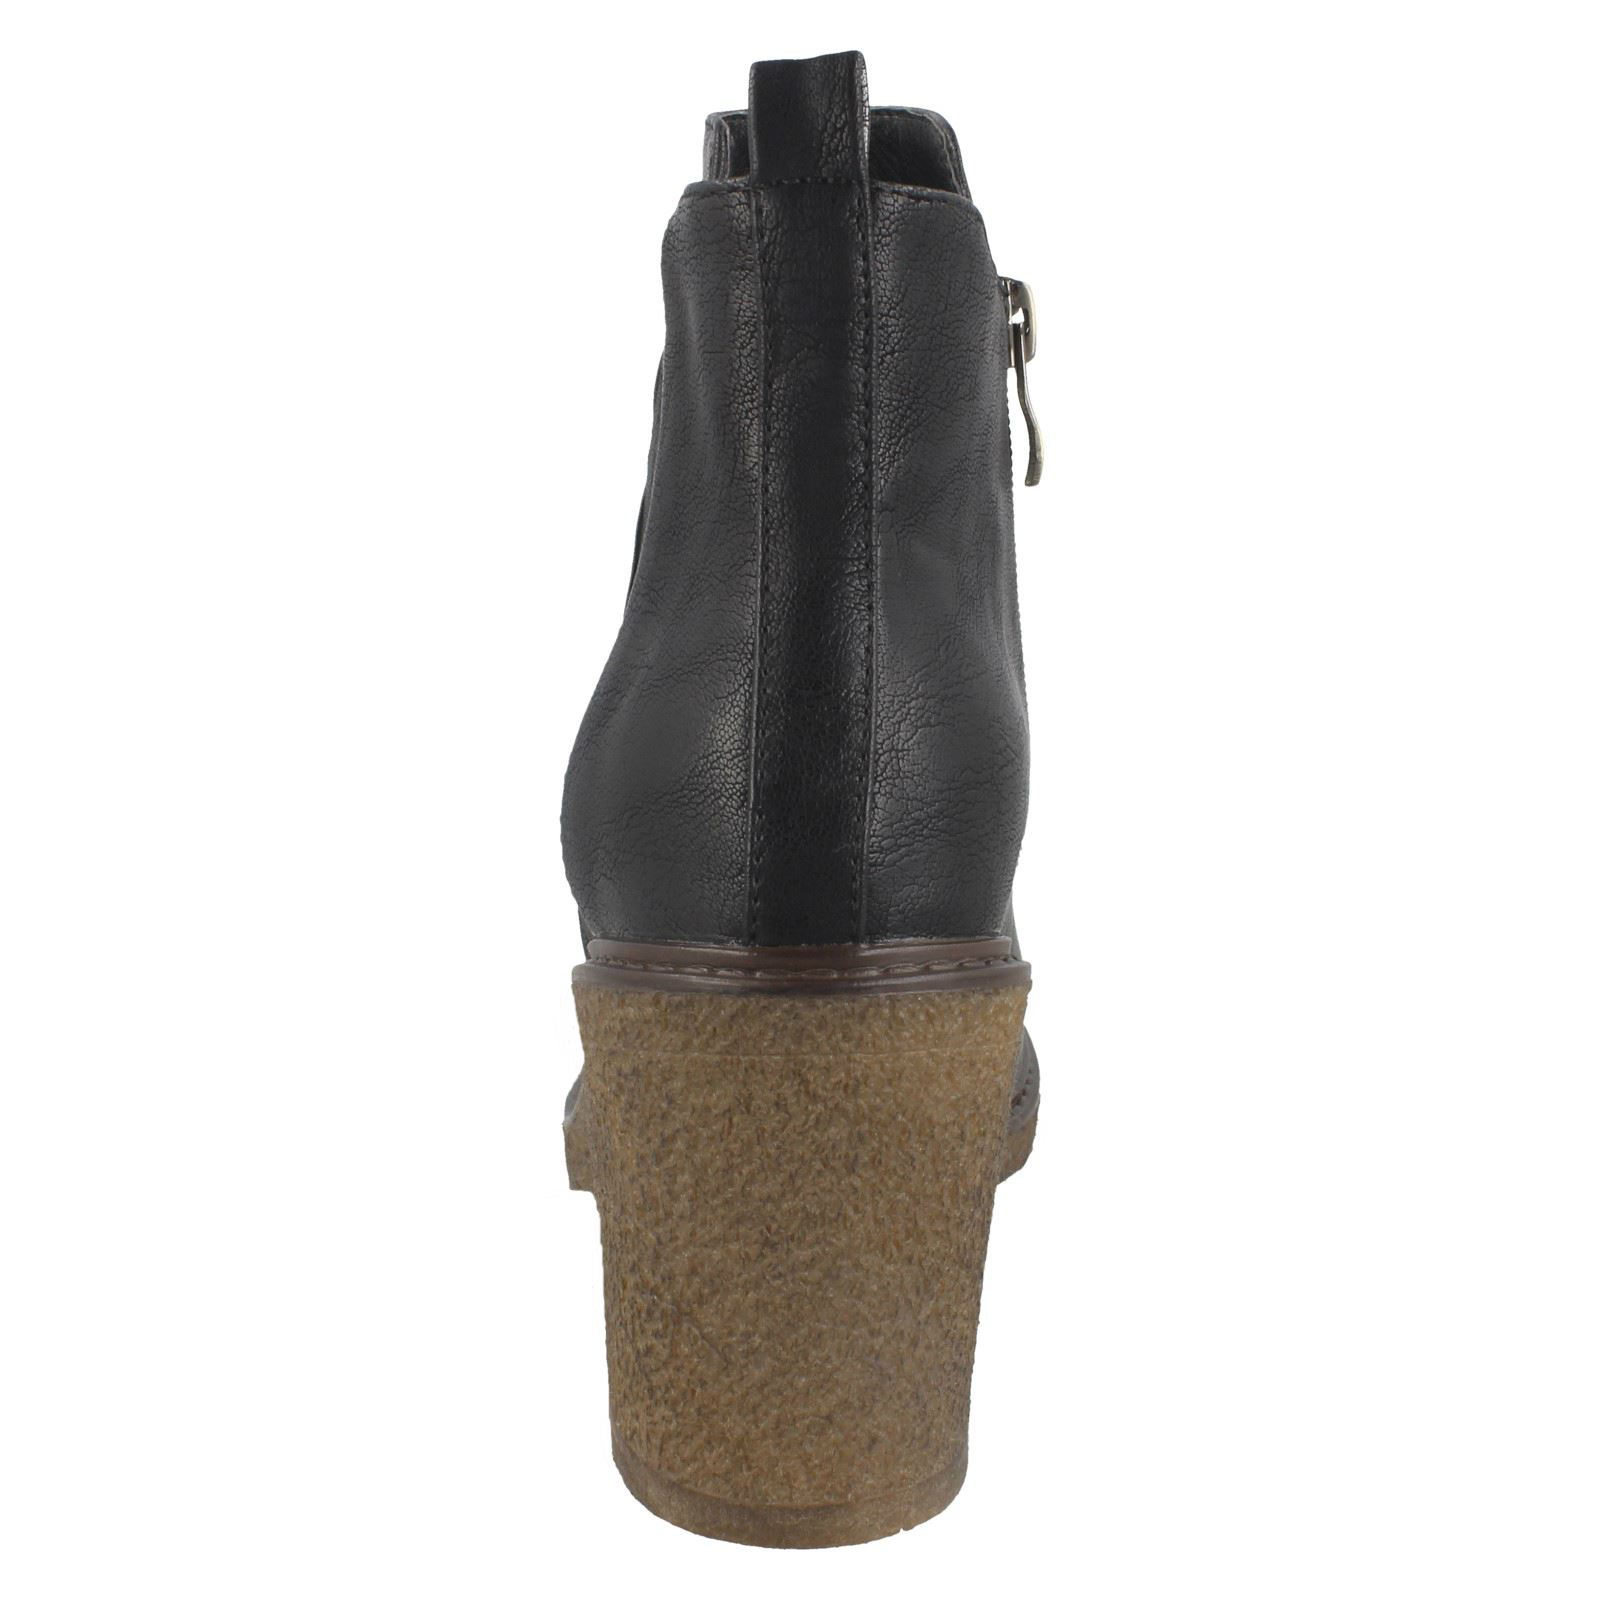 Femmes Down to to Down Earth Cheville Bottes Style-F5R0958 d35bf0